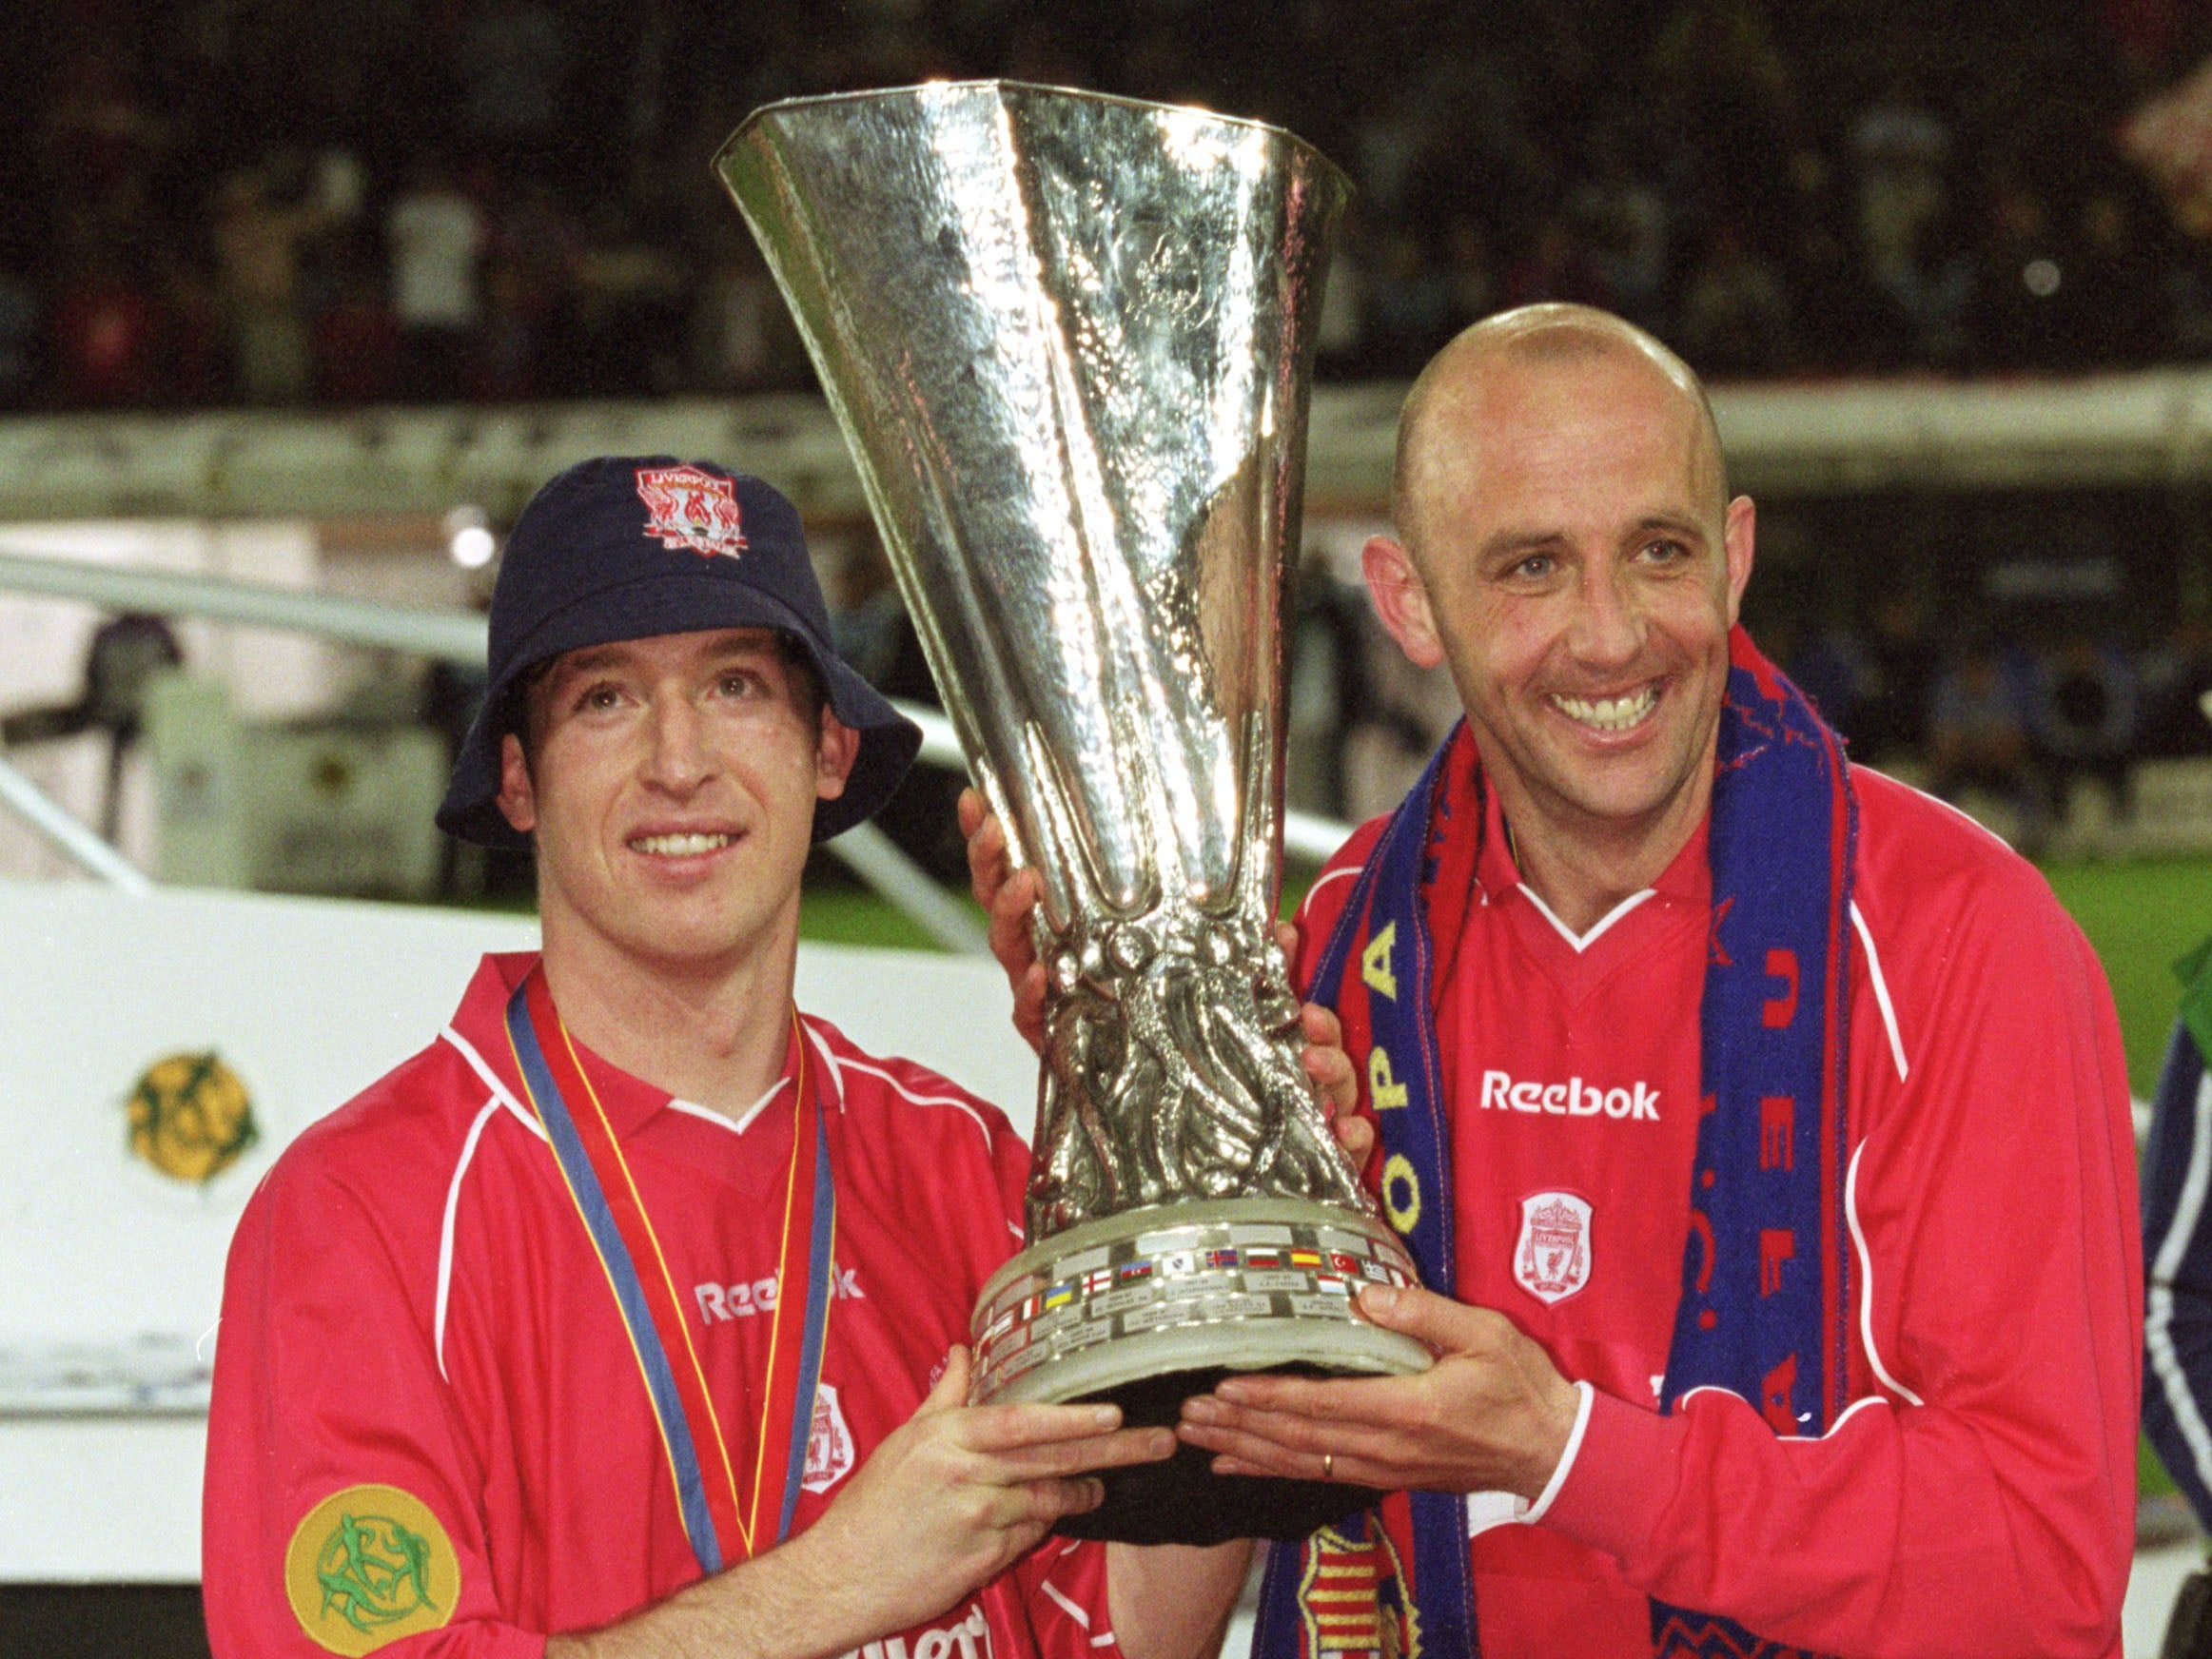 Liverpool news: Gary McAllister's abiding memory of 2001 Uefa Cup final win is a giant sex toy